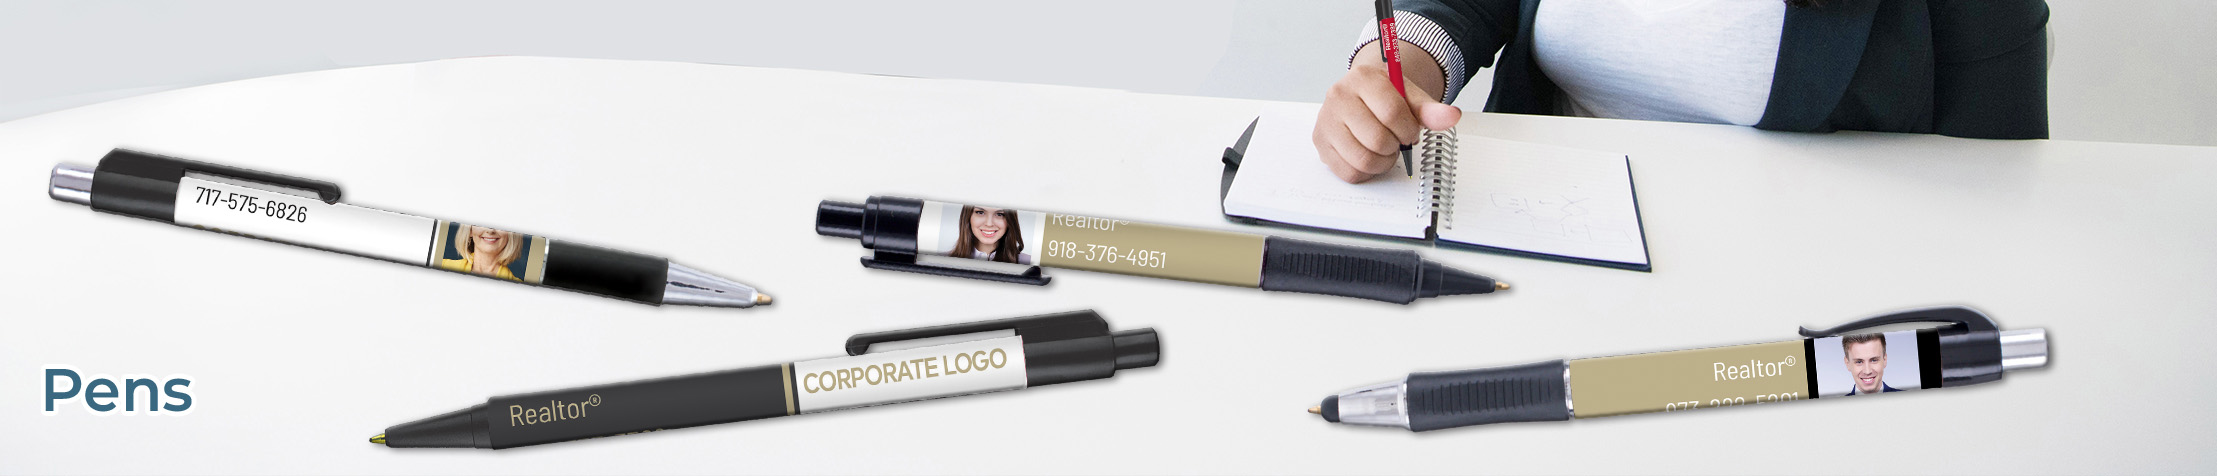 Century 21 Real Estate Pens - Century 21  personalized realtor promotional products | BestPrintBuy.com